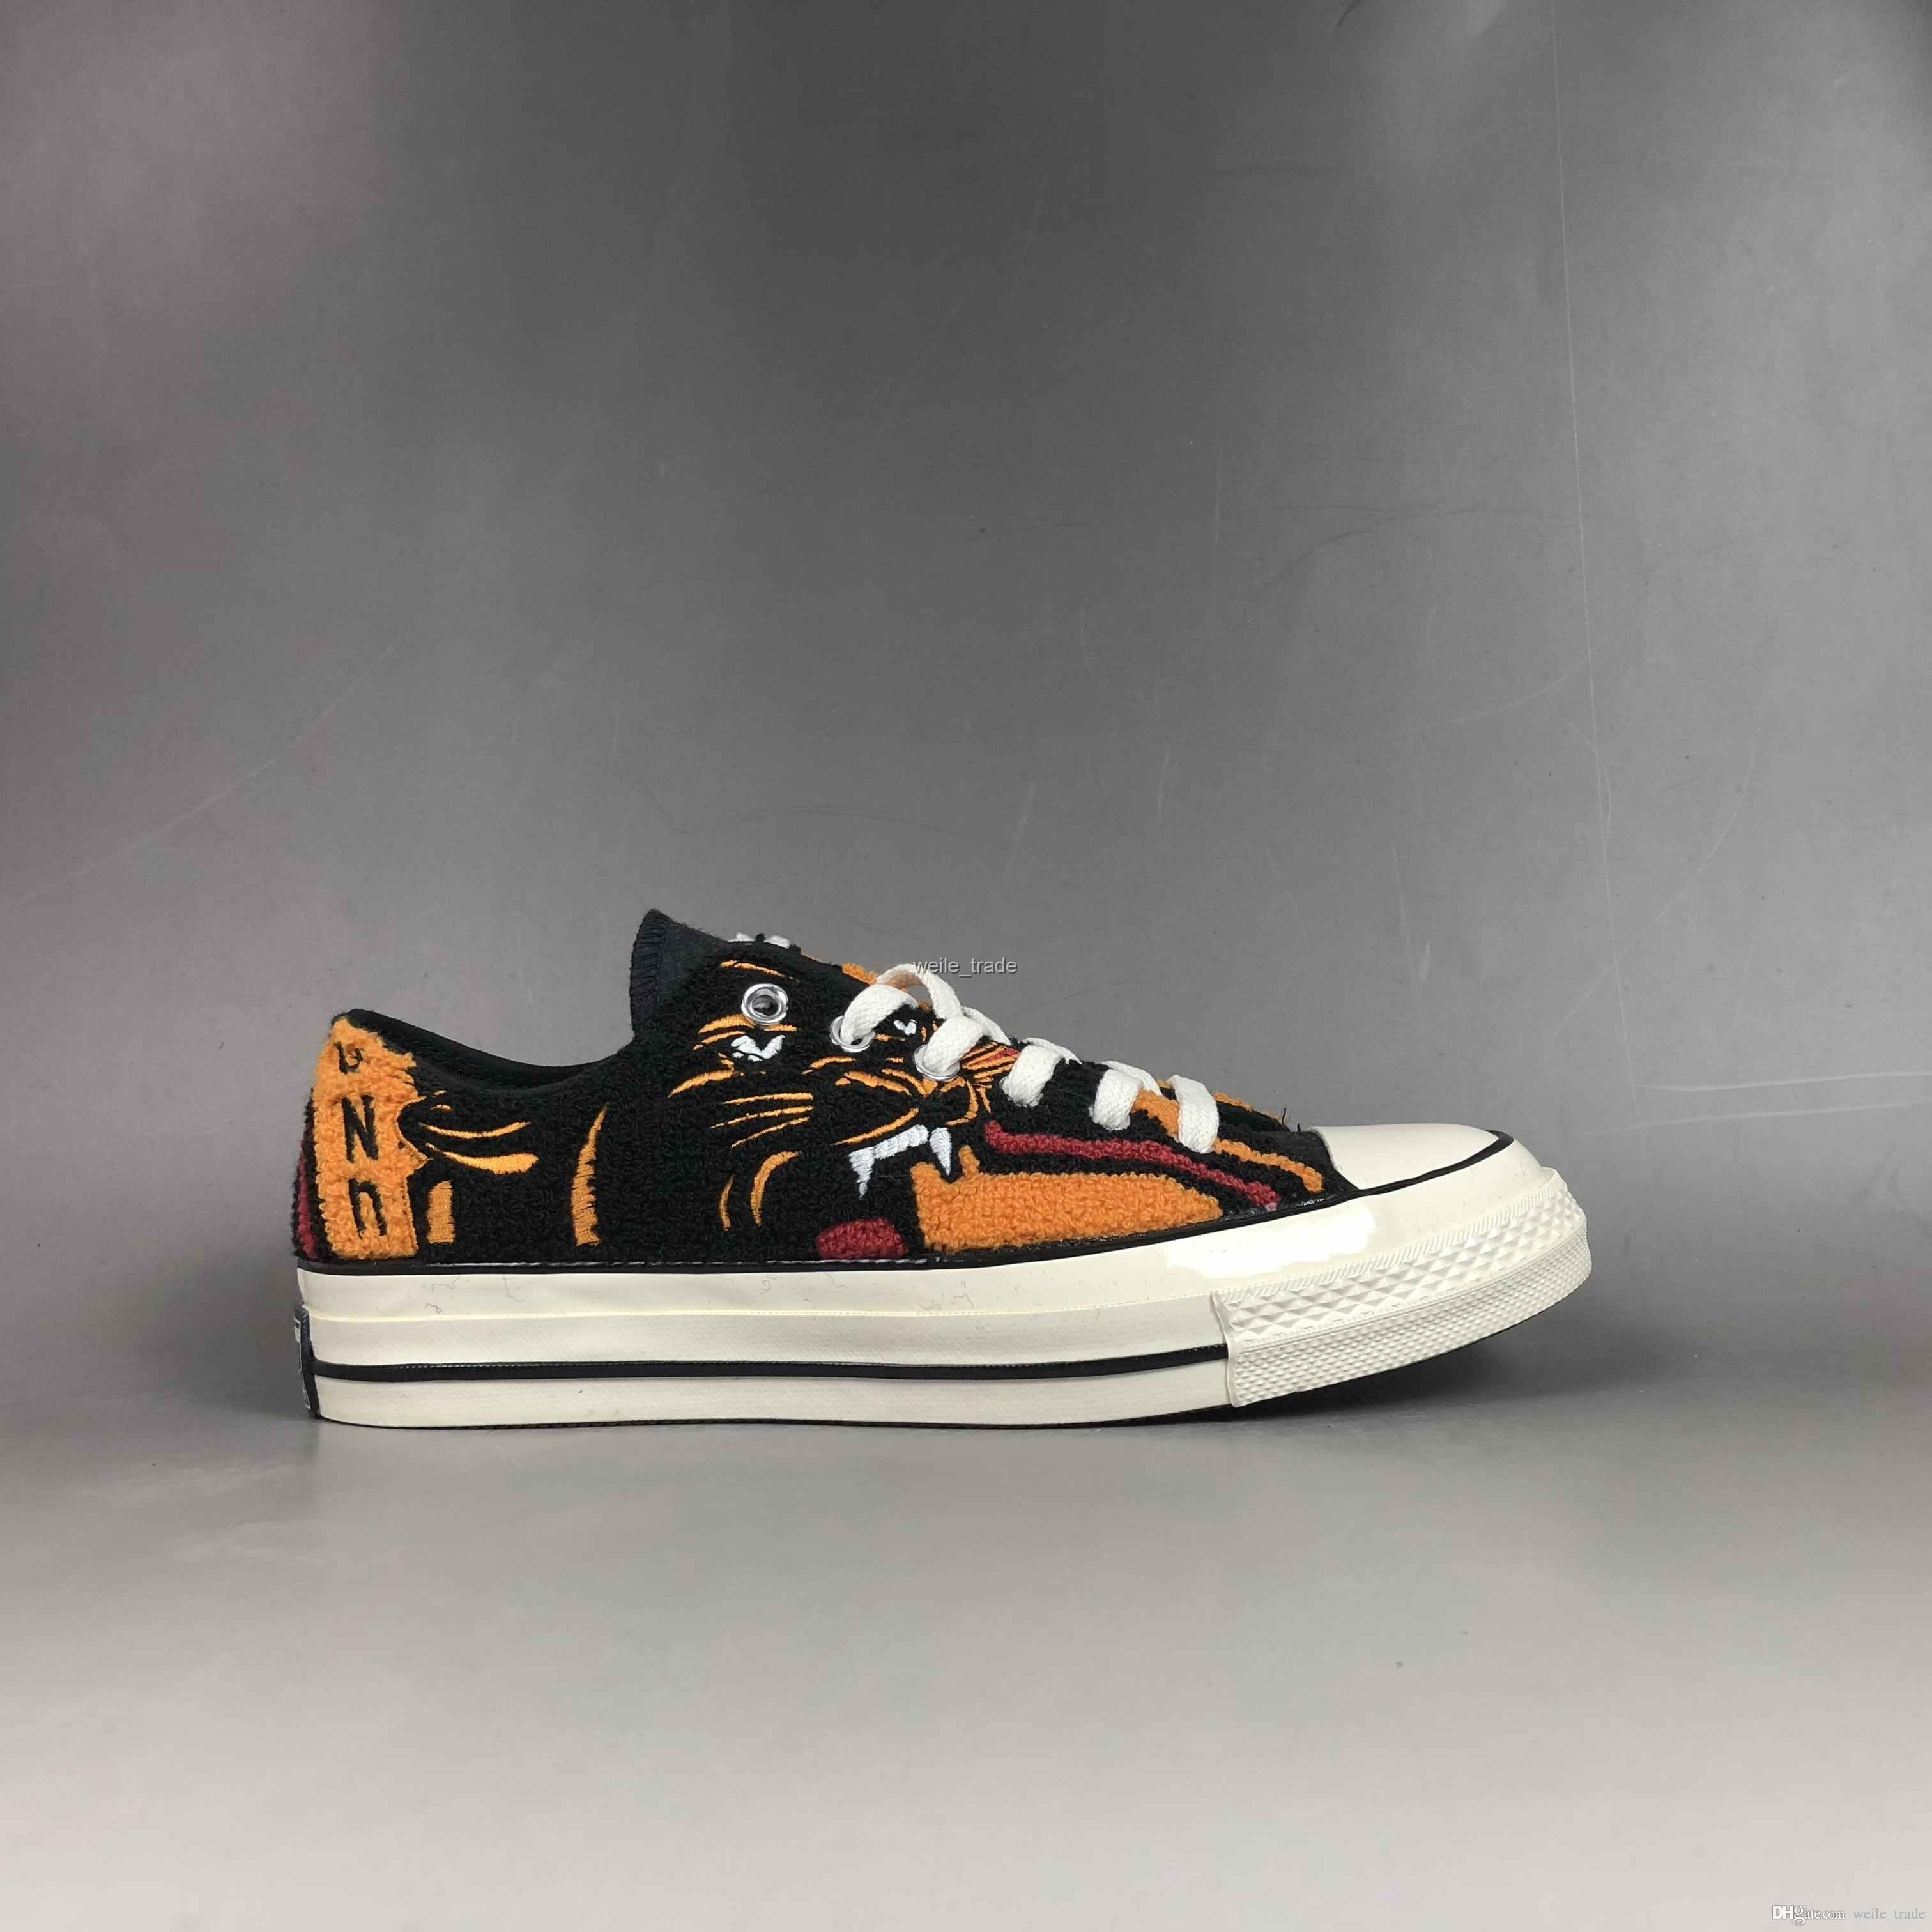 f4be6194065af9 2019 New Undefeated X Chuck 1970 Ox Low Casual All Star Fashion Taylor  Tiger Canvas Designer Women Men Trainers Shoes Sneakers 35 44 Shoes Uk  Pumps Shoes ...